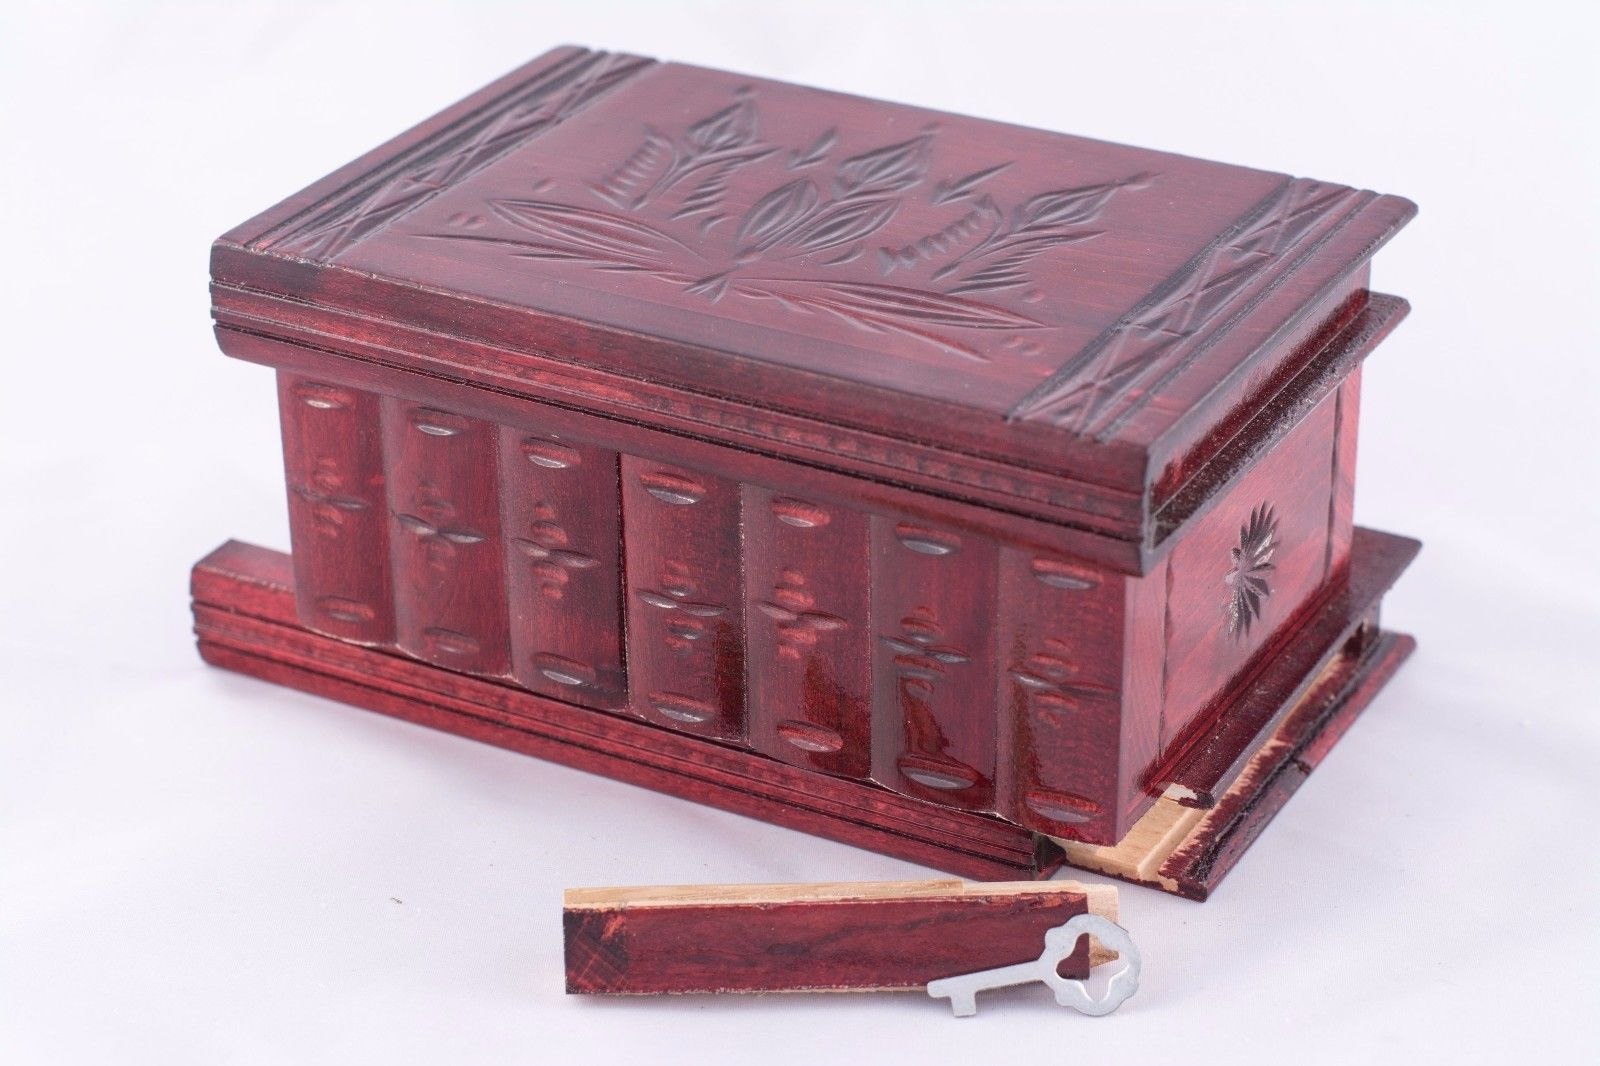 Unique Handcrafted Natural Wood Jewelry Keepsake Trinket Box Cherry Red Puzzle